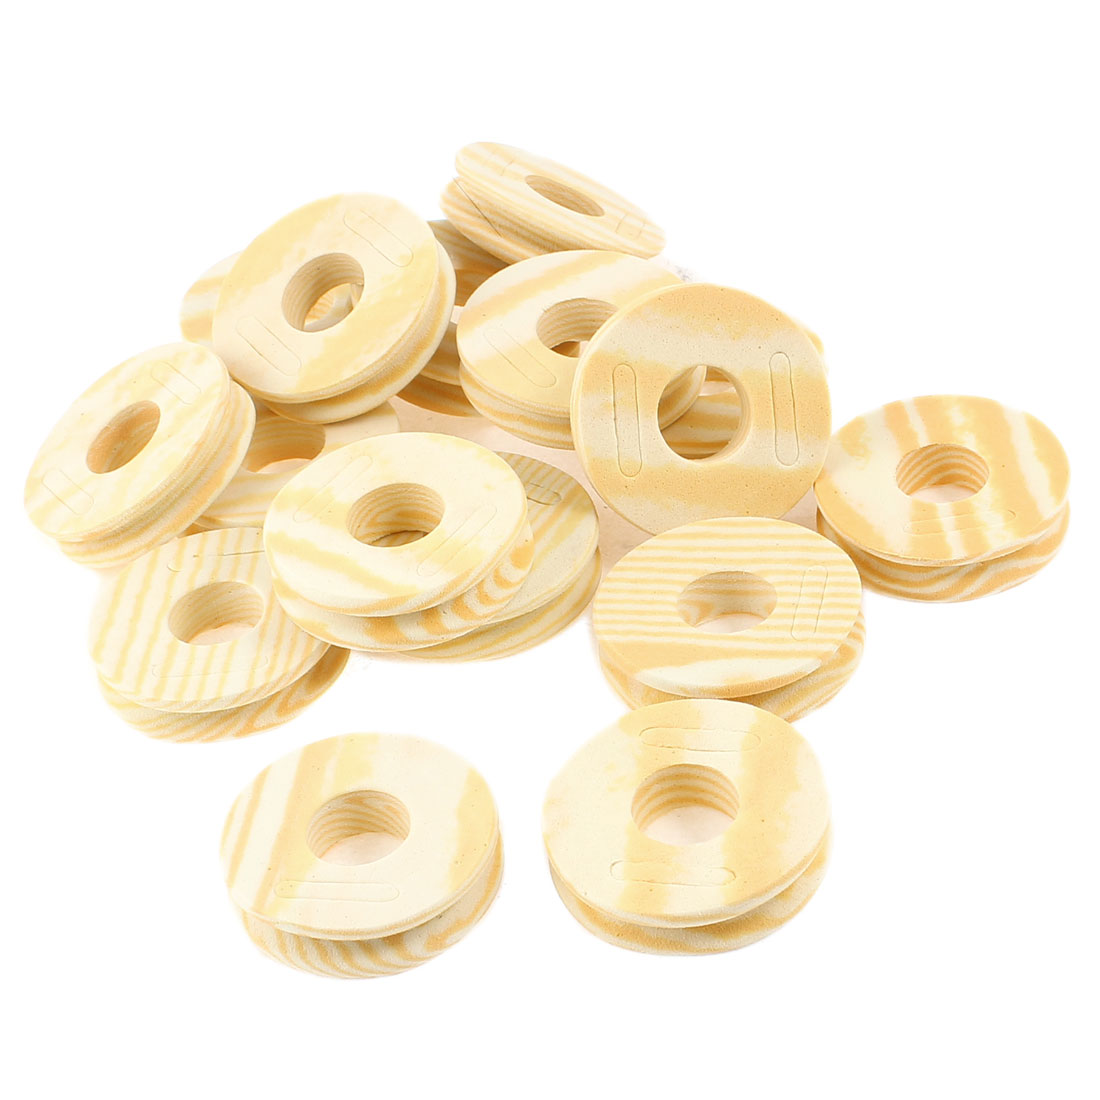 16 Pcs Stripes Printed Fishing Line Foam Spool Khaki Beige